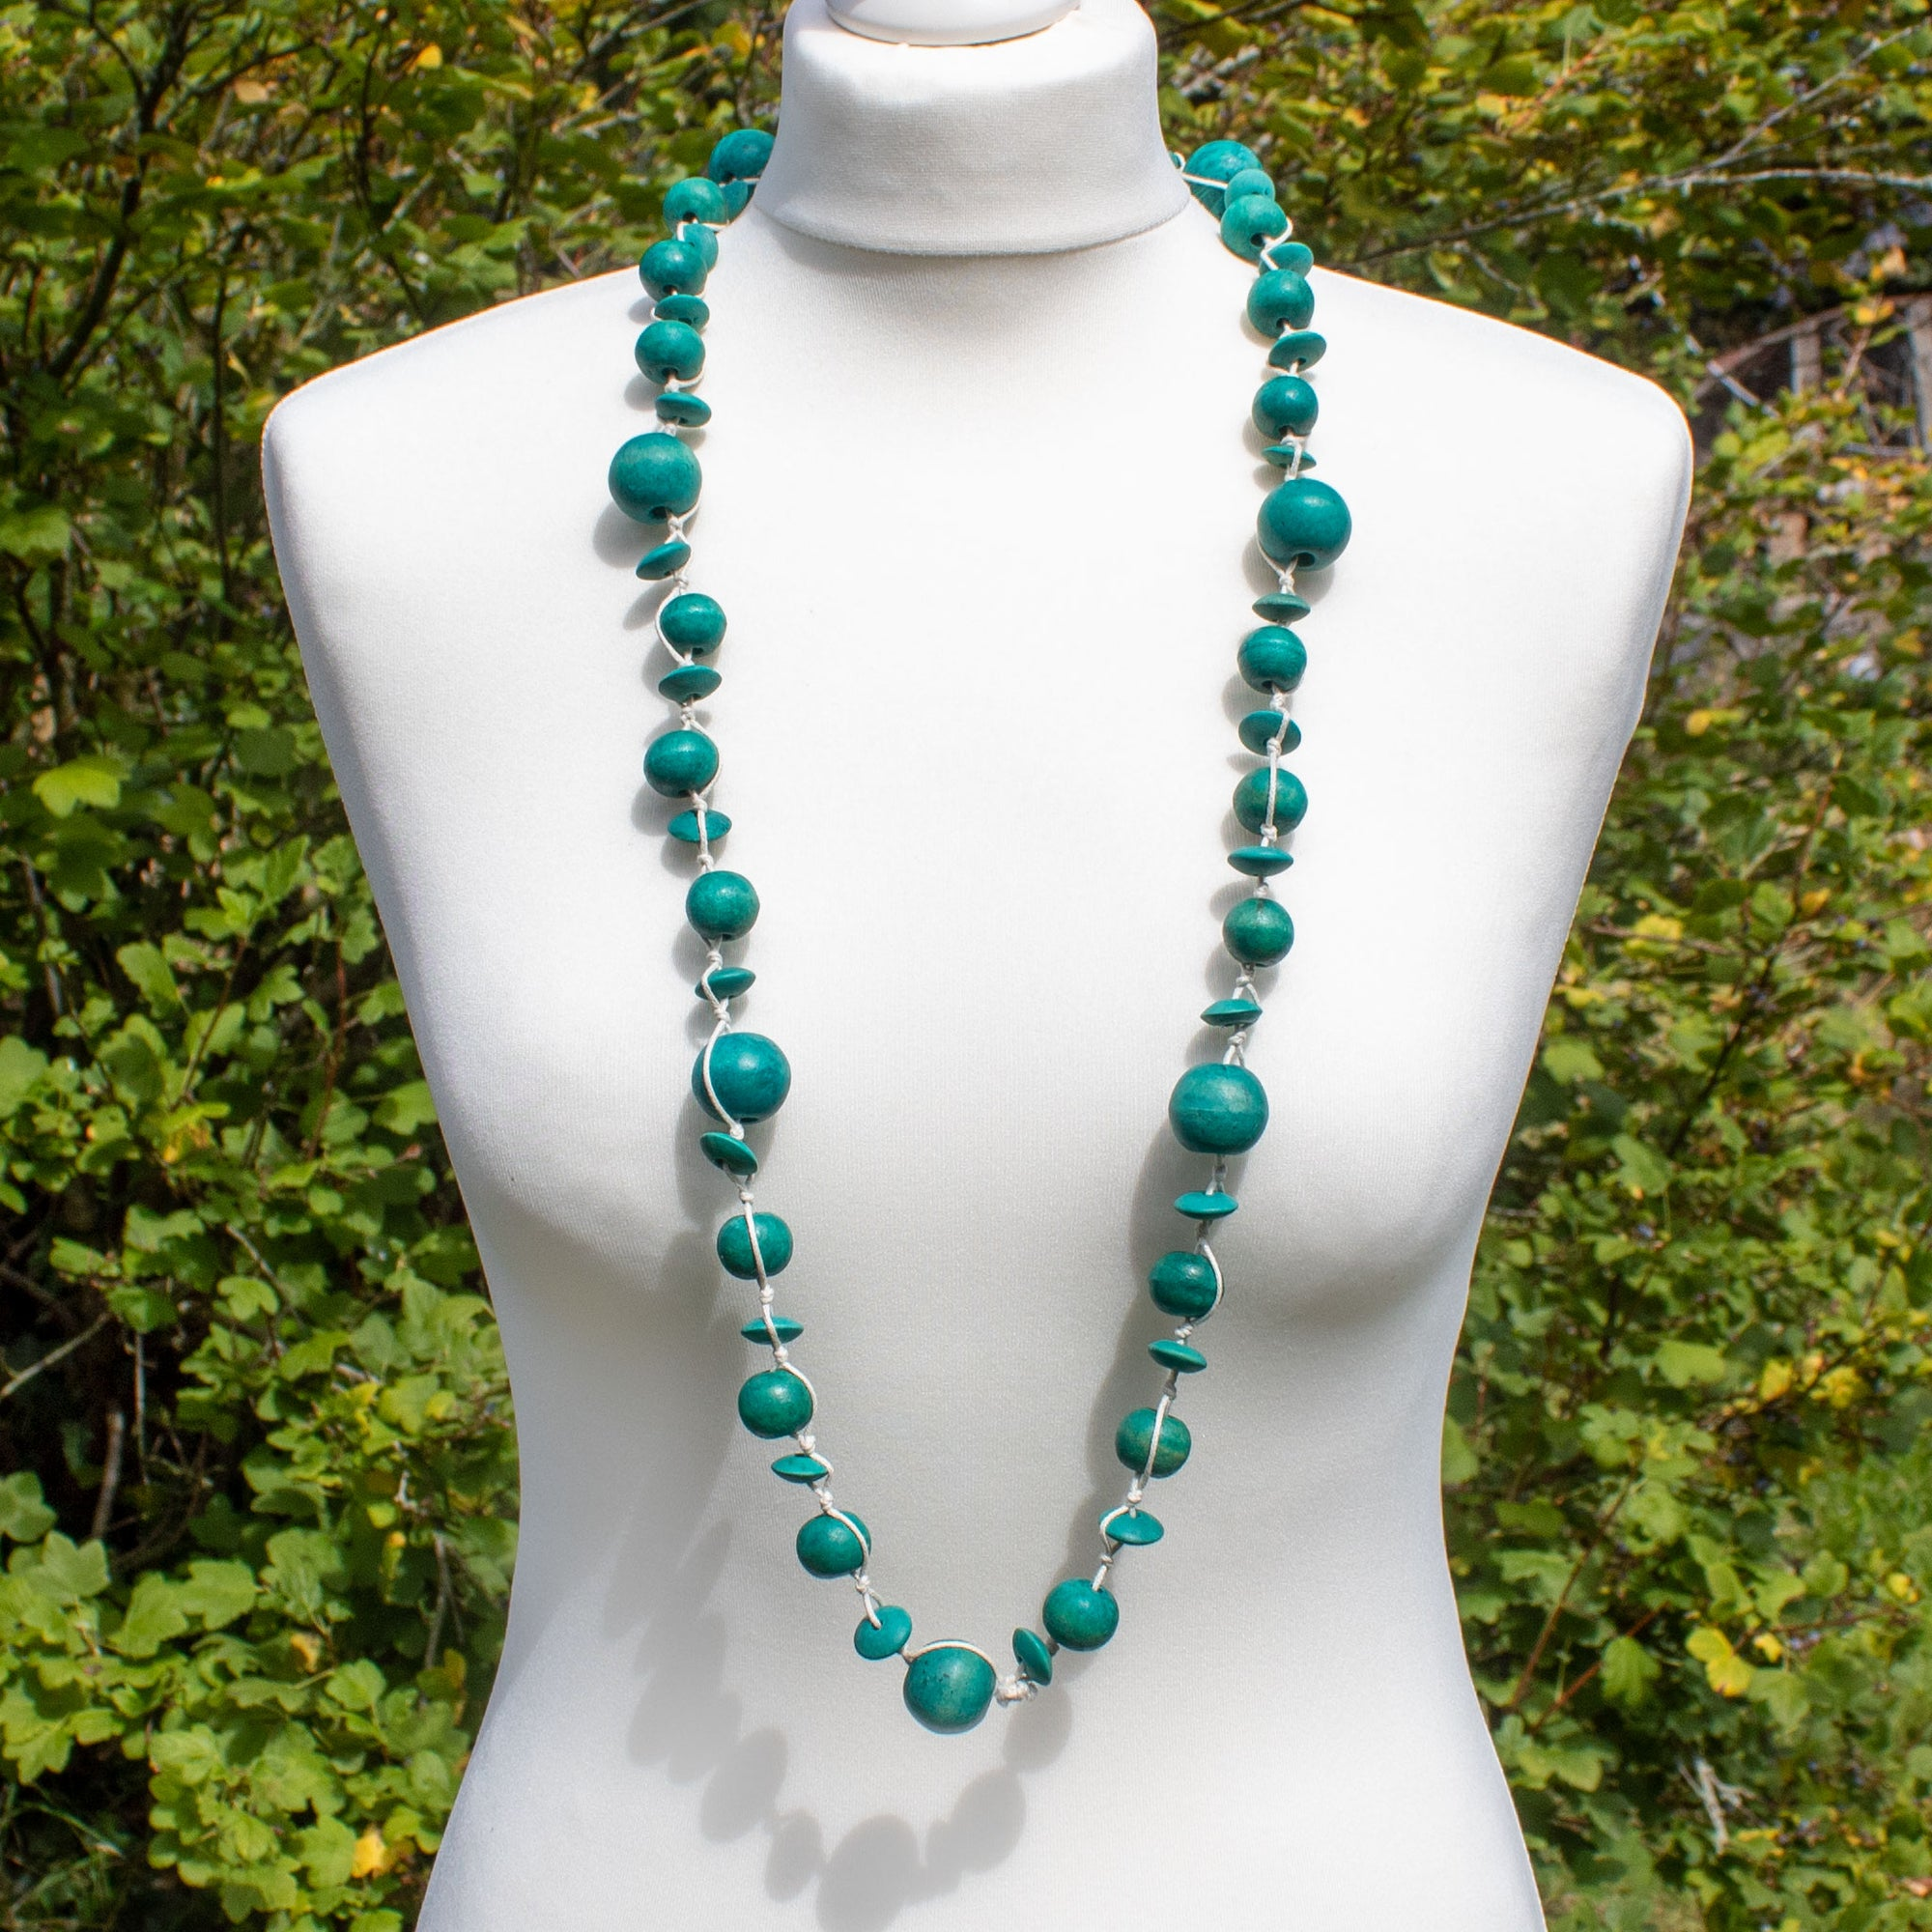 Turquoise Wooden Bead Necklace | Necklace - The Naughty Shrew